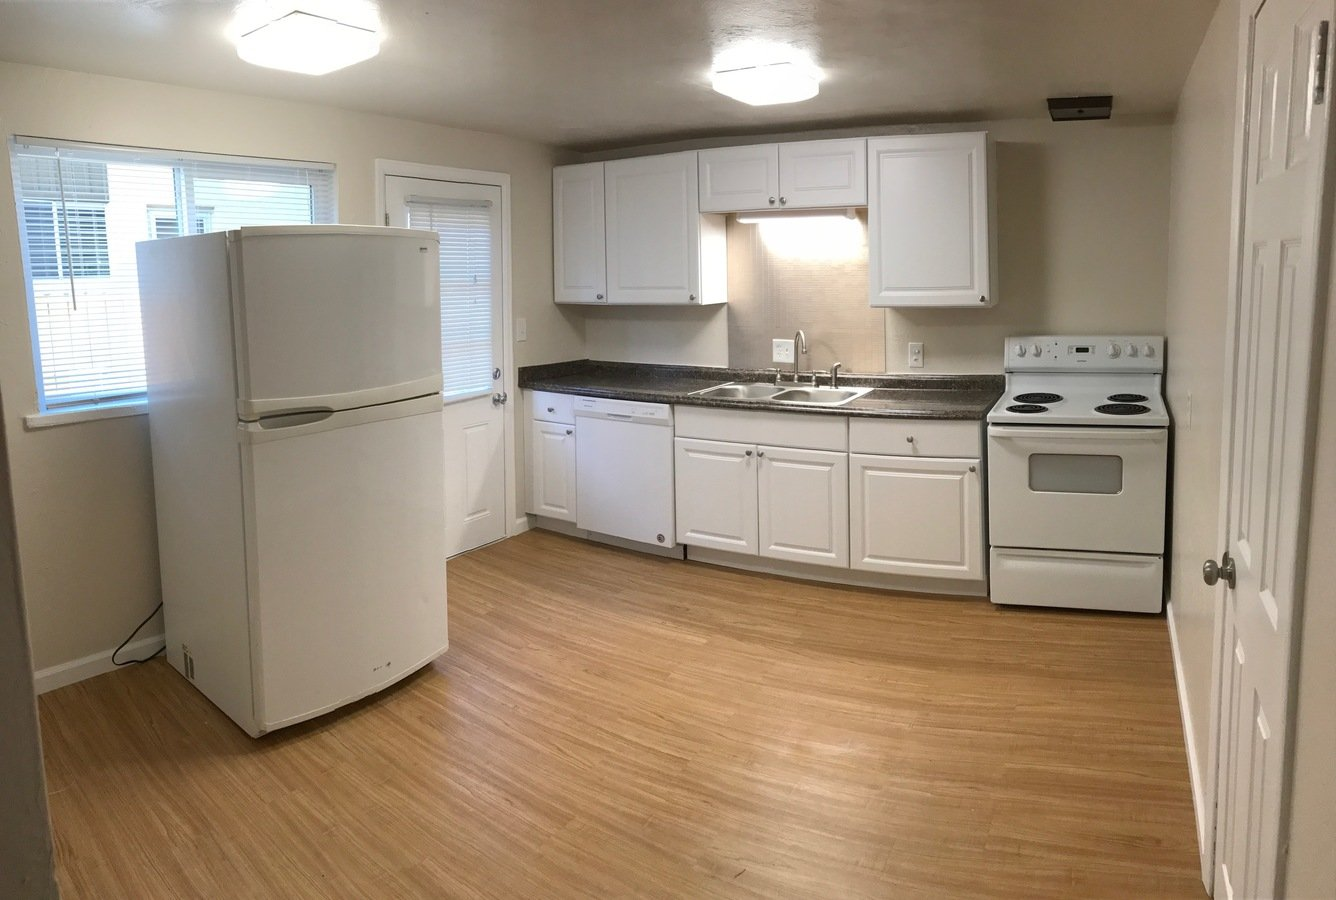 2 Bedrooms 1 Bathroom Apartment for rent at Barcelona in Lakewood, CO